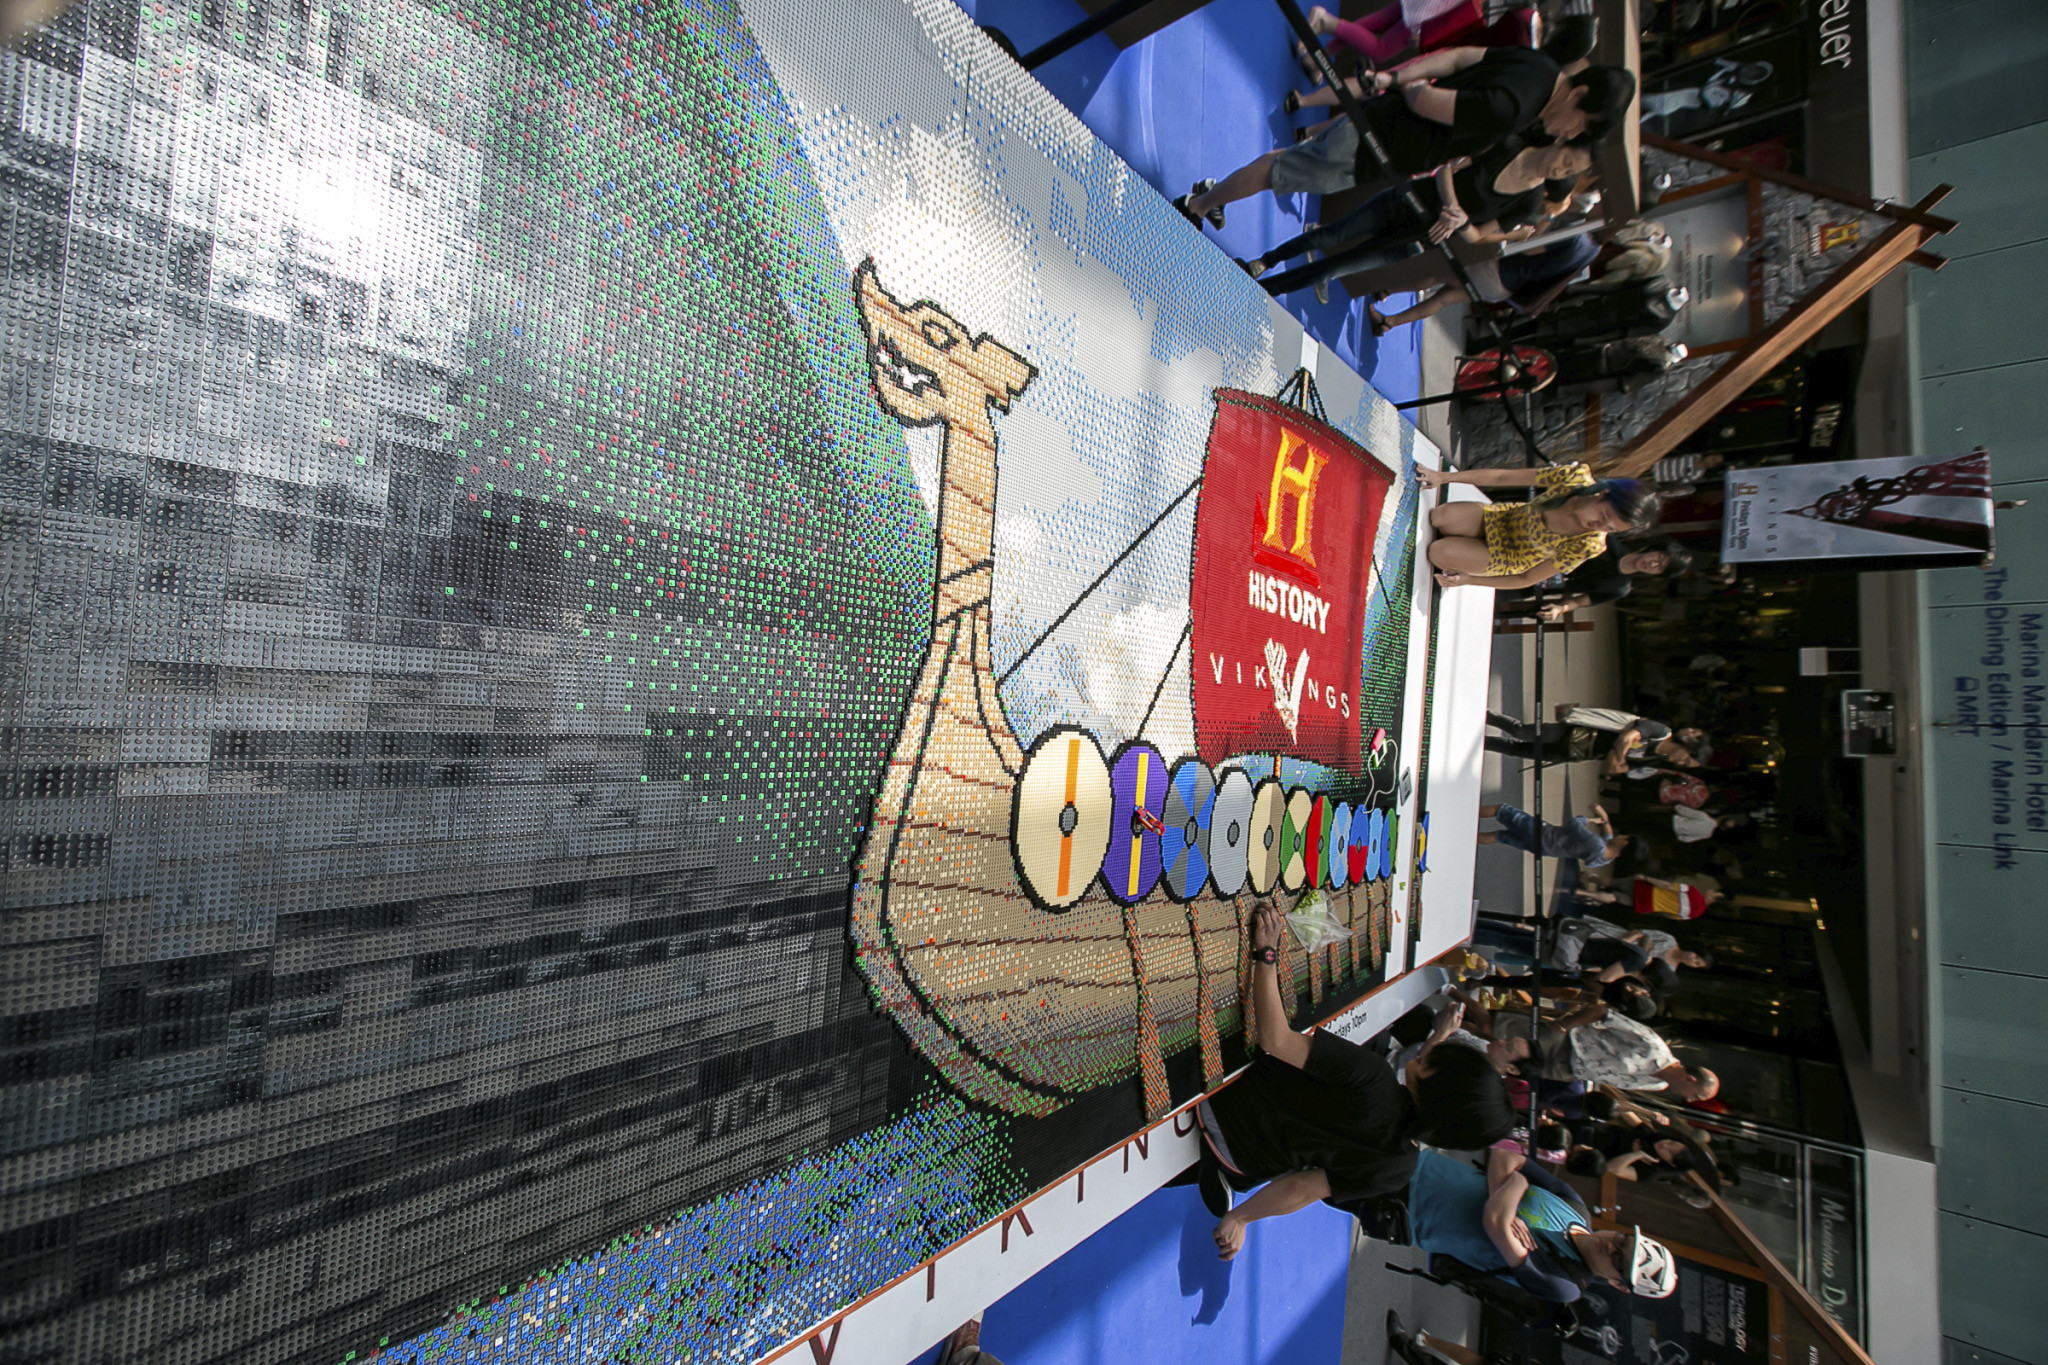 Lego Helps Break Singapore Book Of Record For The Largest Wall Mural